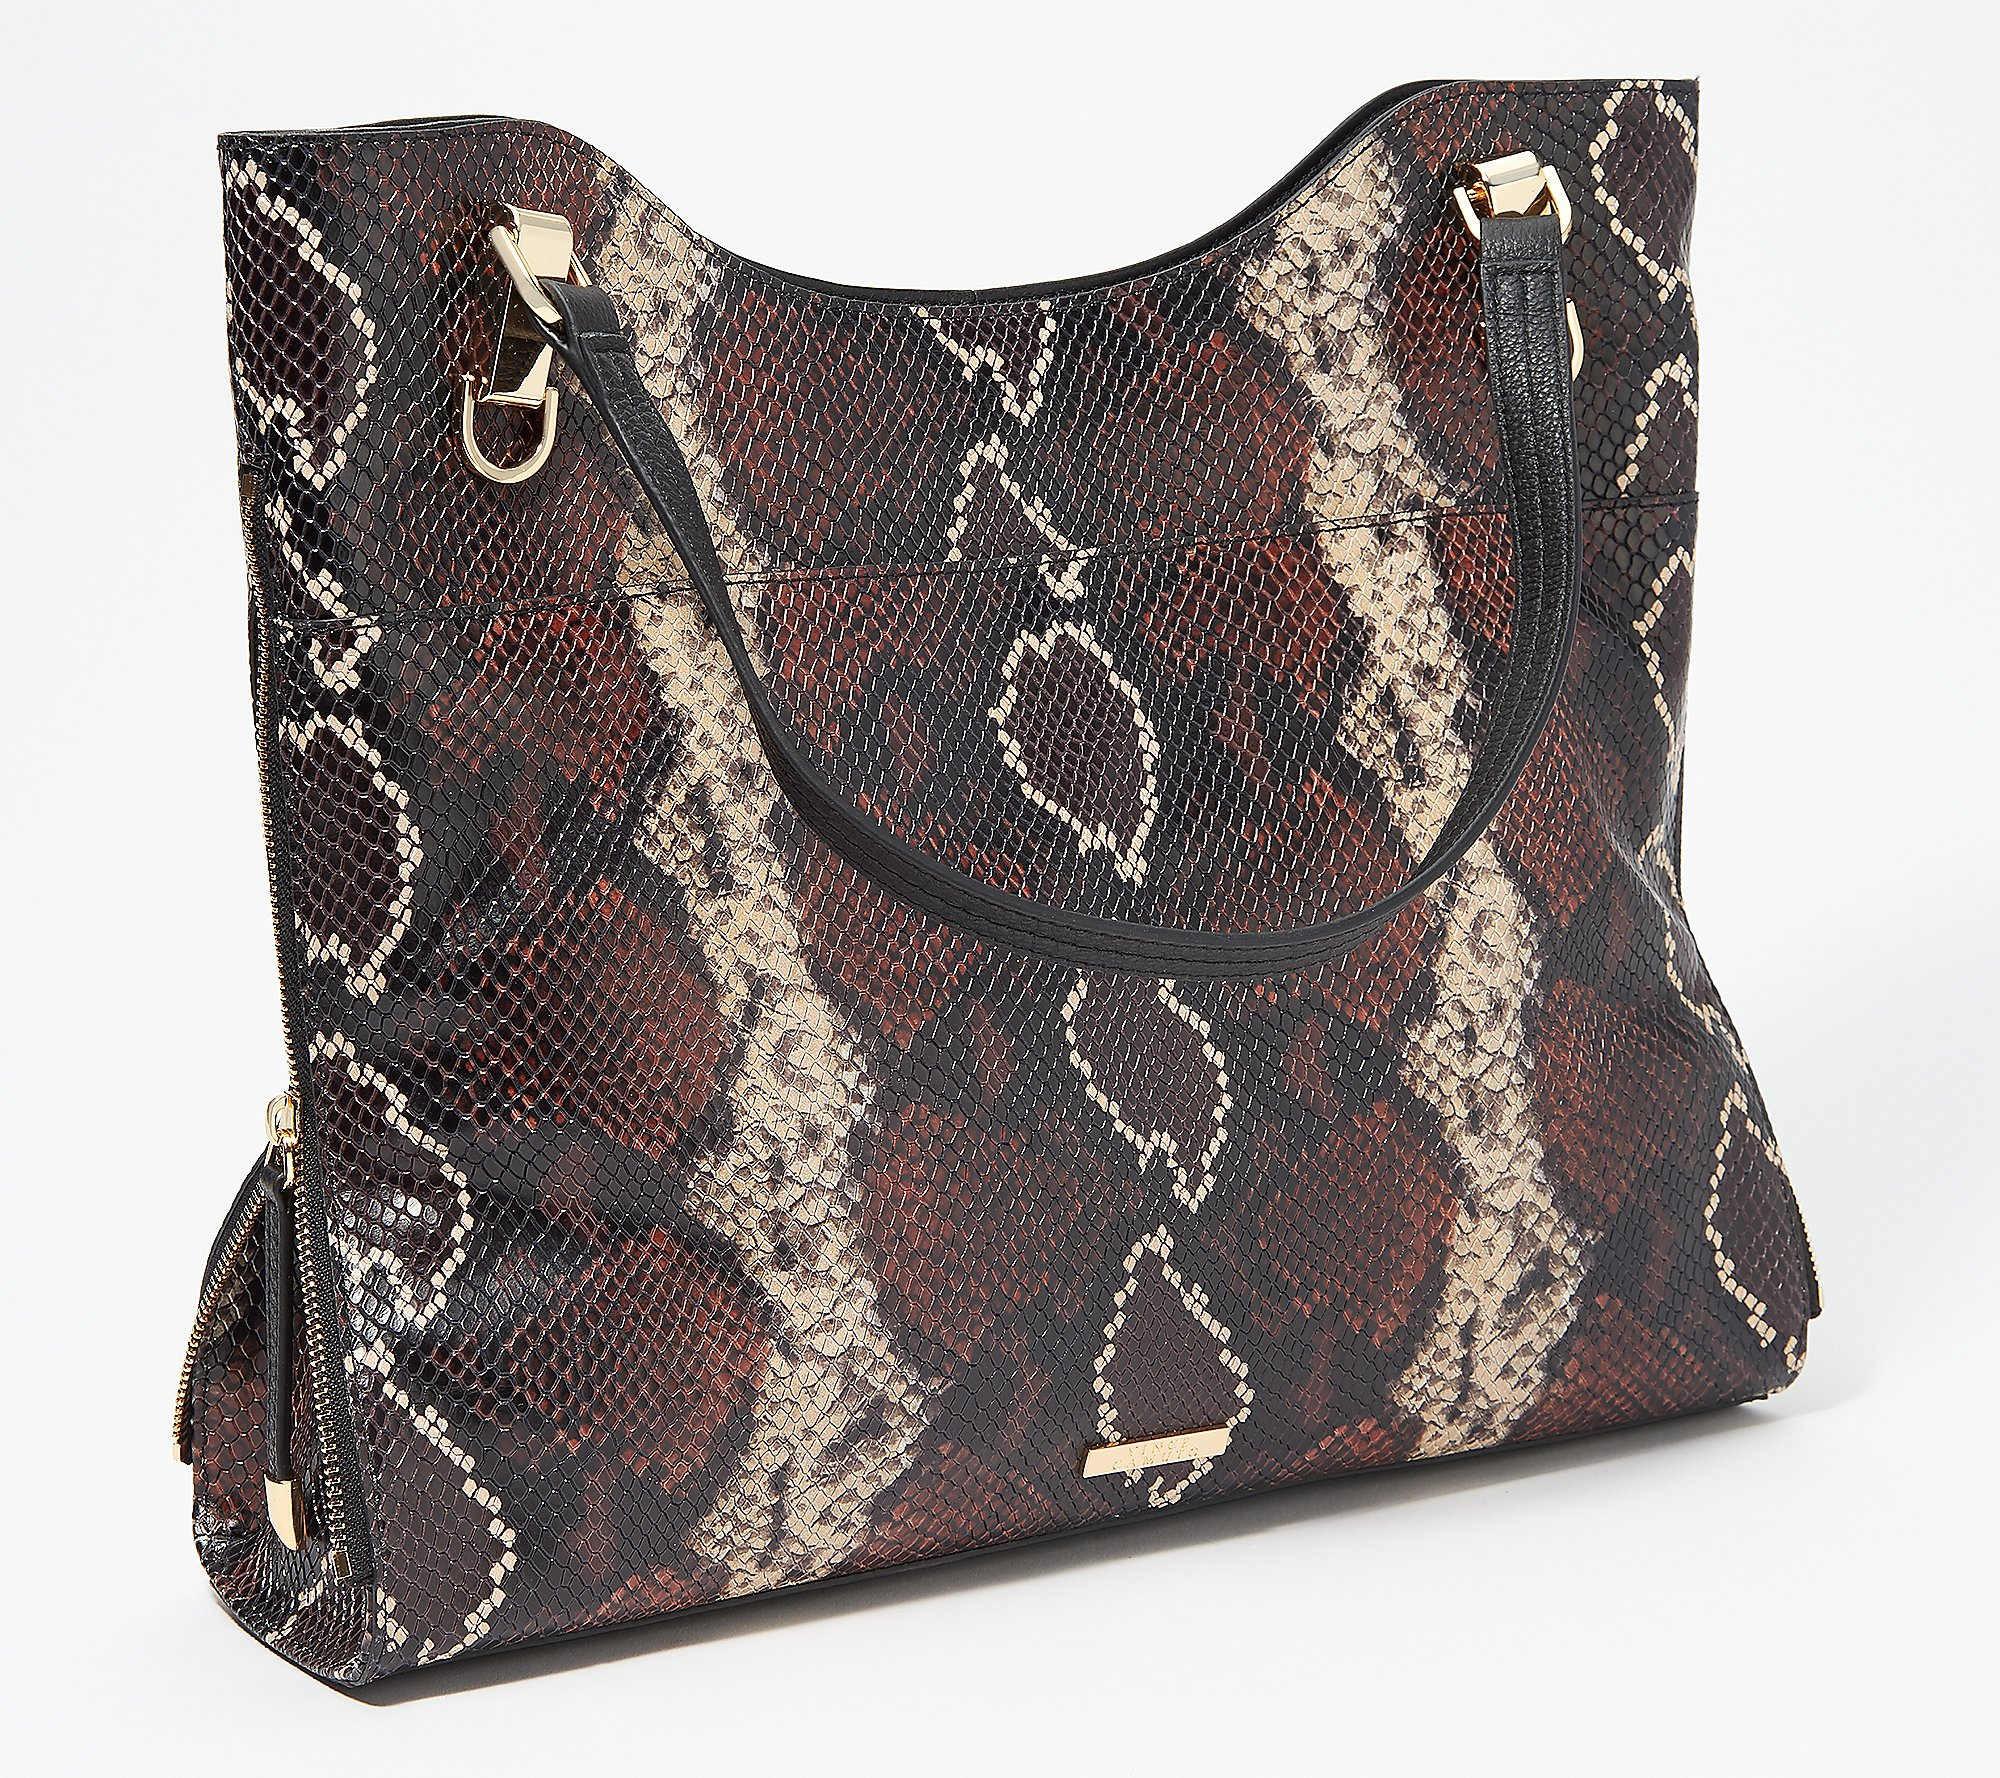 Vince Camuto Solid Or Snake Embossed Leather Tote Emely Qvc Com